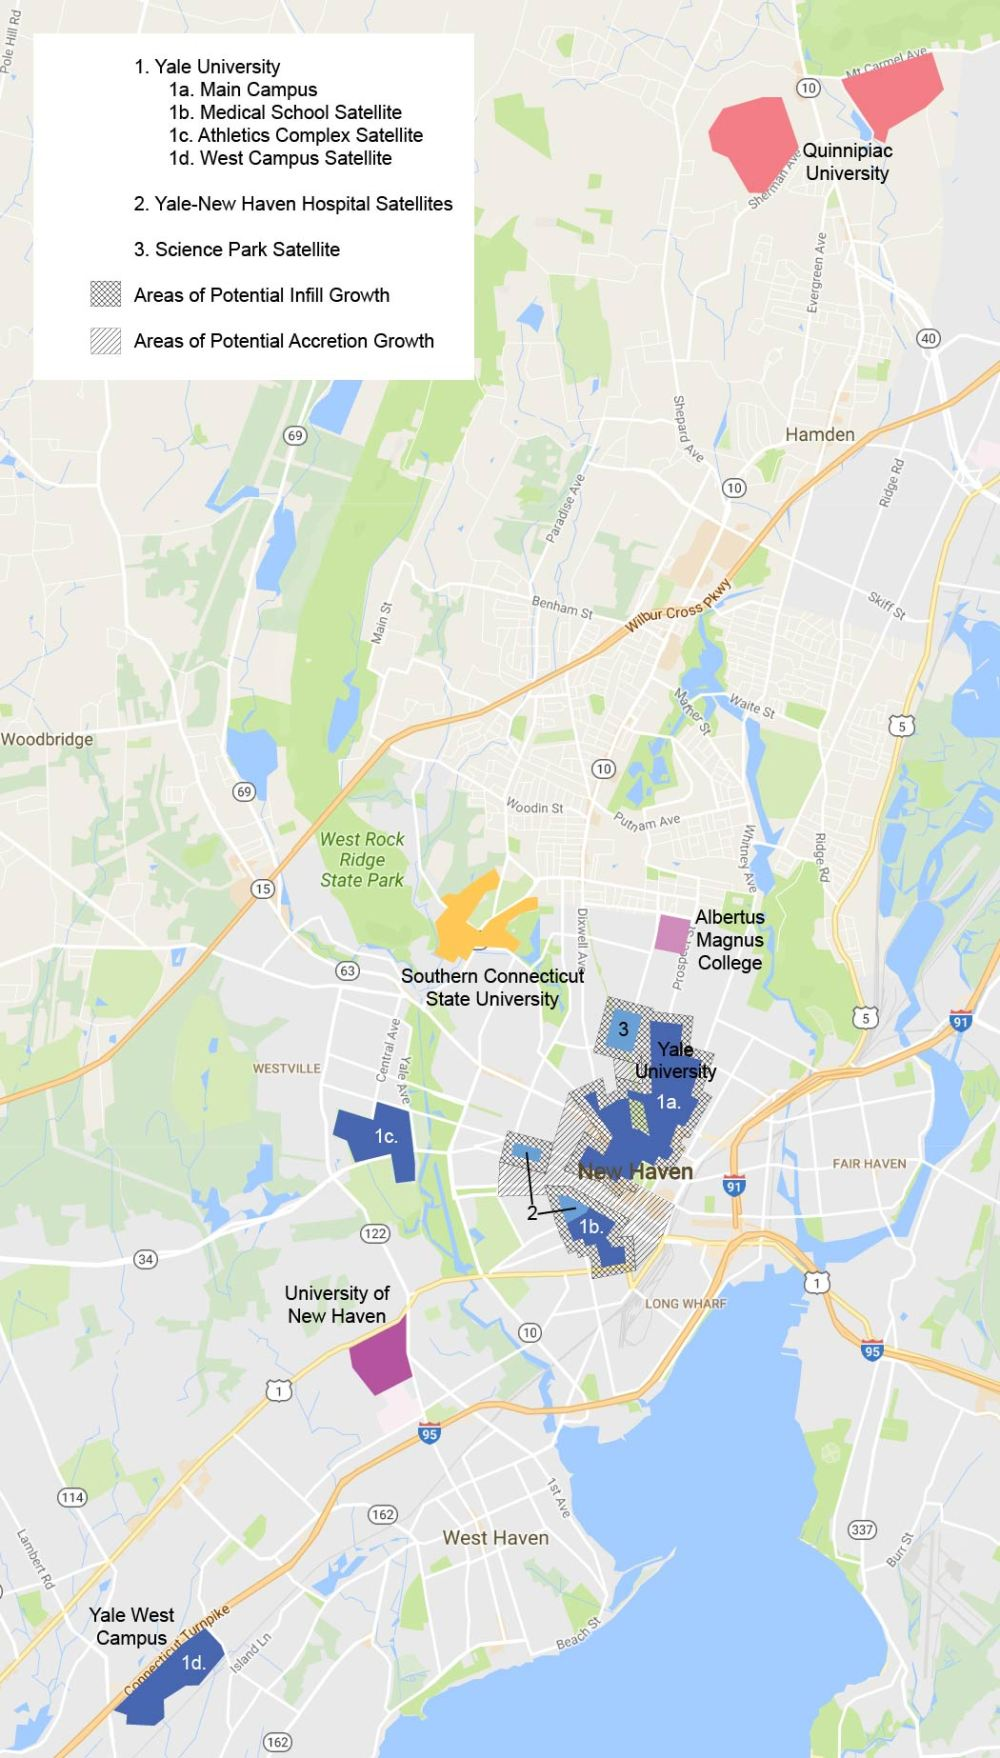 Universities around New Haven Map-01